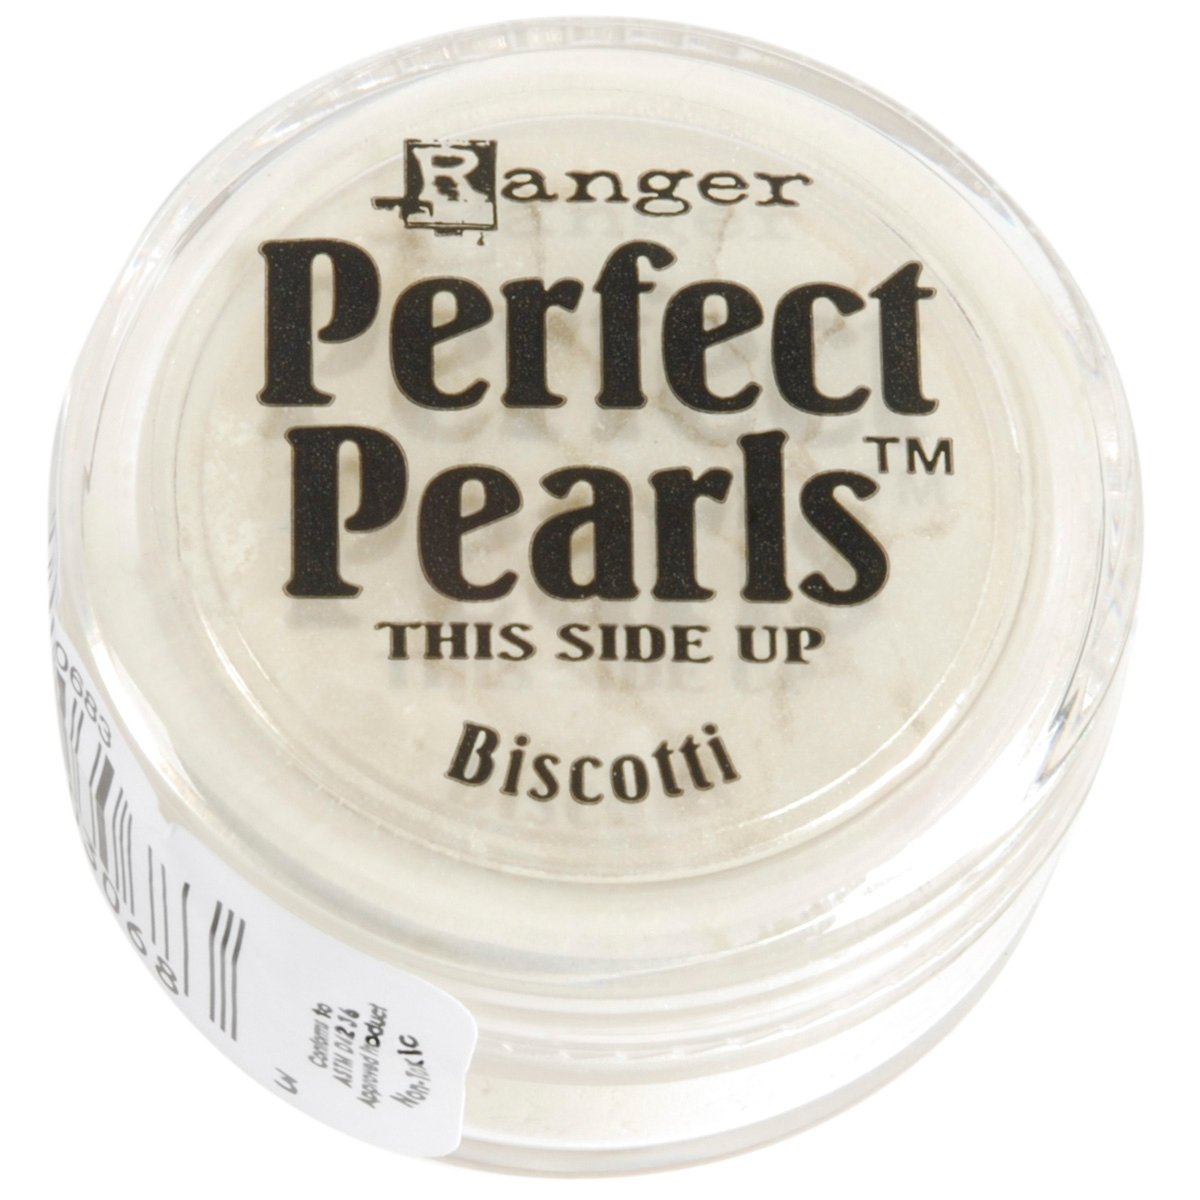 Ranger PPP-30683 Perfect Pearls Pigment Powder, Biscotti Notions - In Network